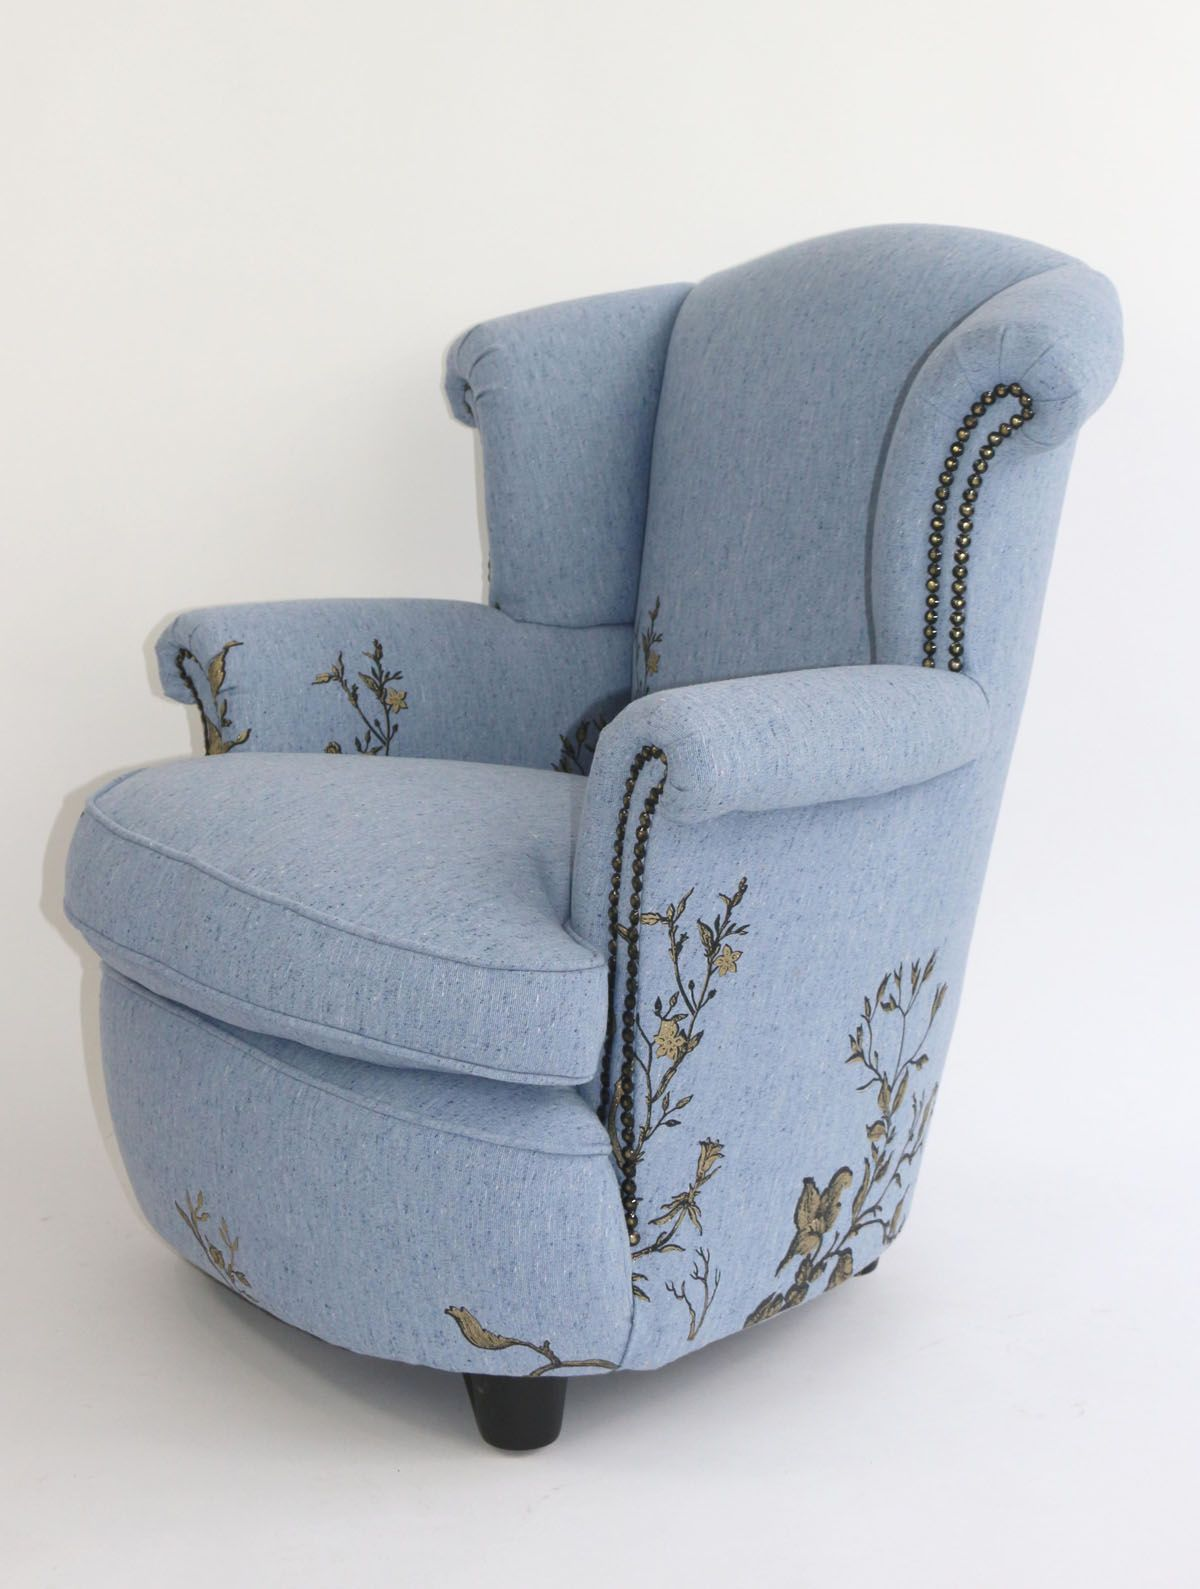 Furniture Timorous Beasties Upholstered Chairs